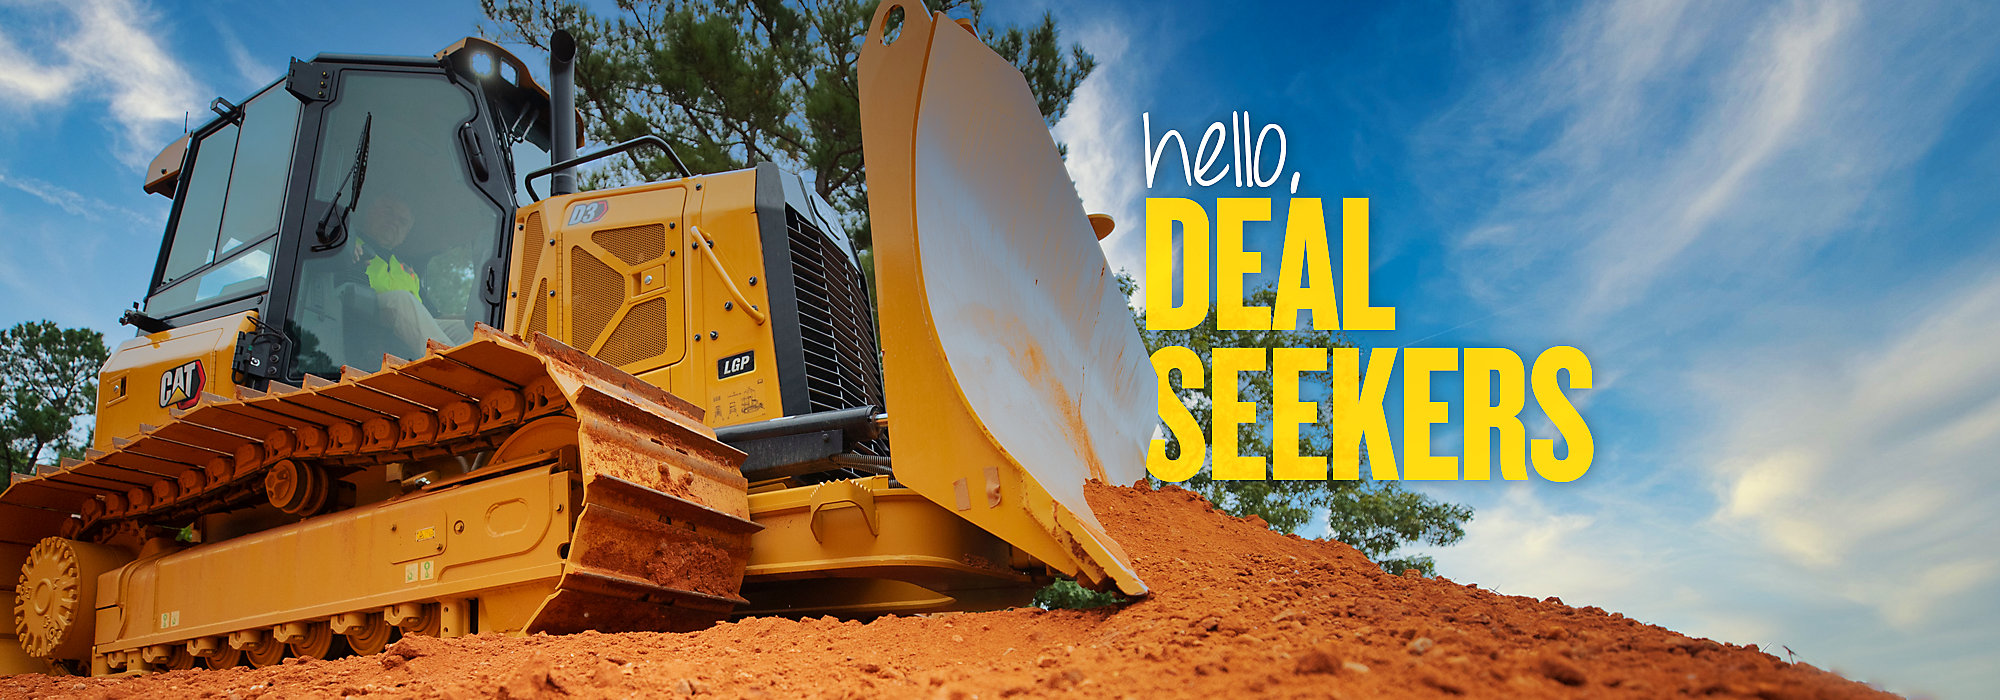 Cat Small Dozers - Hello, Deal Seekers